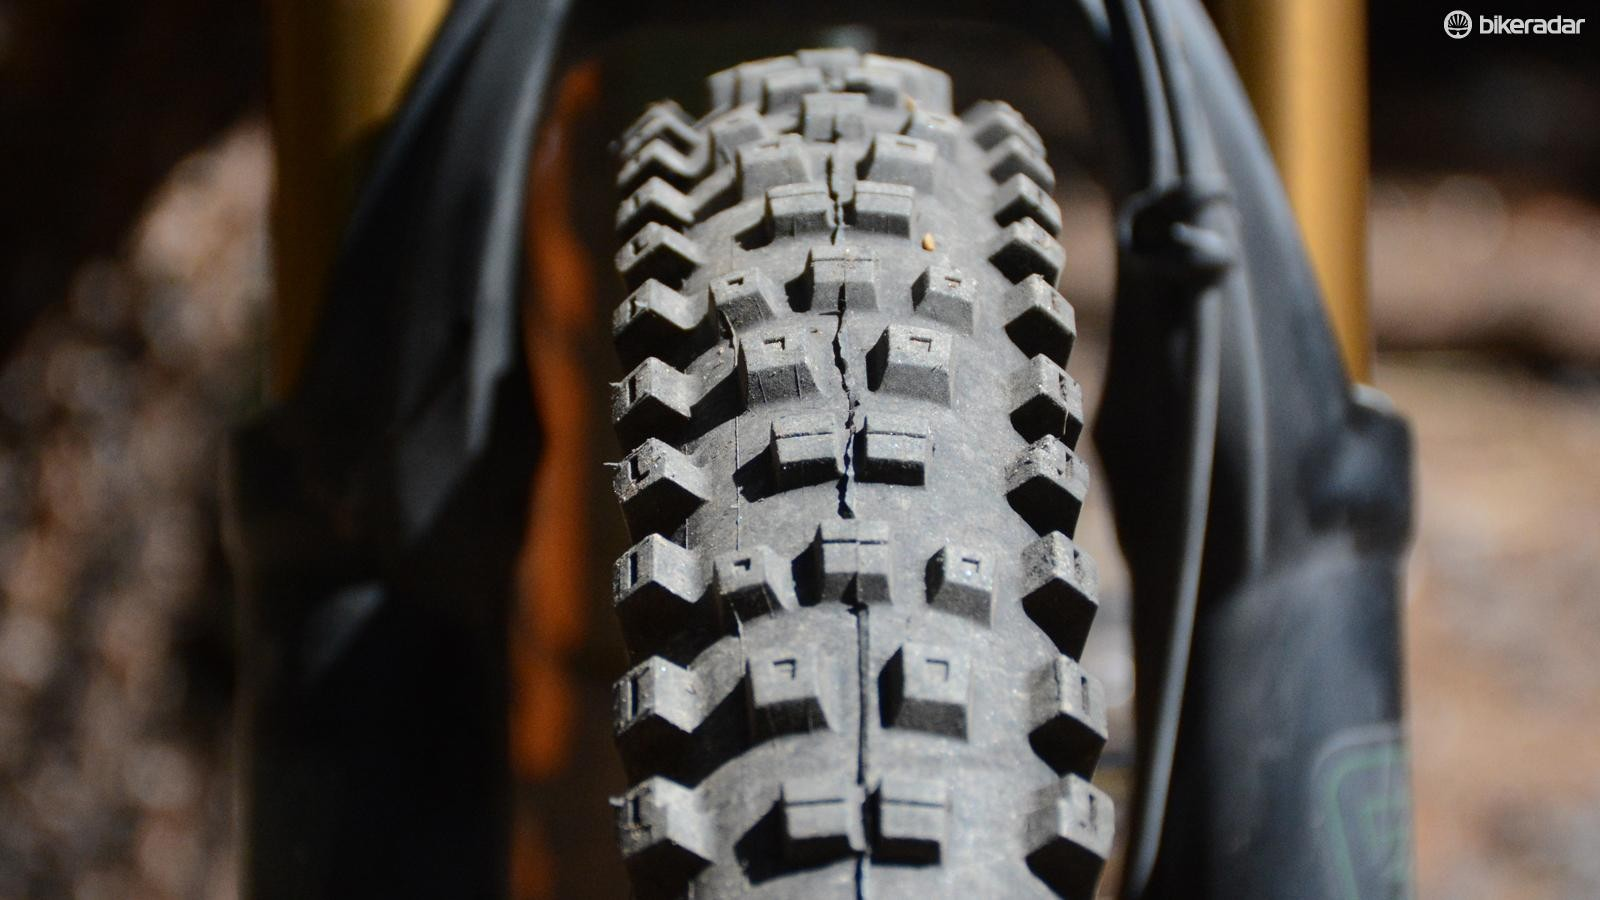 Big knobs with Kenda's RSR dual-layer rubber compound equates to impressive traction